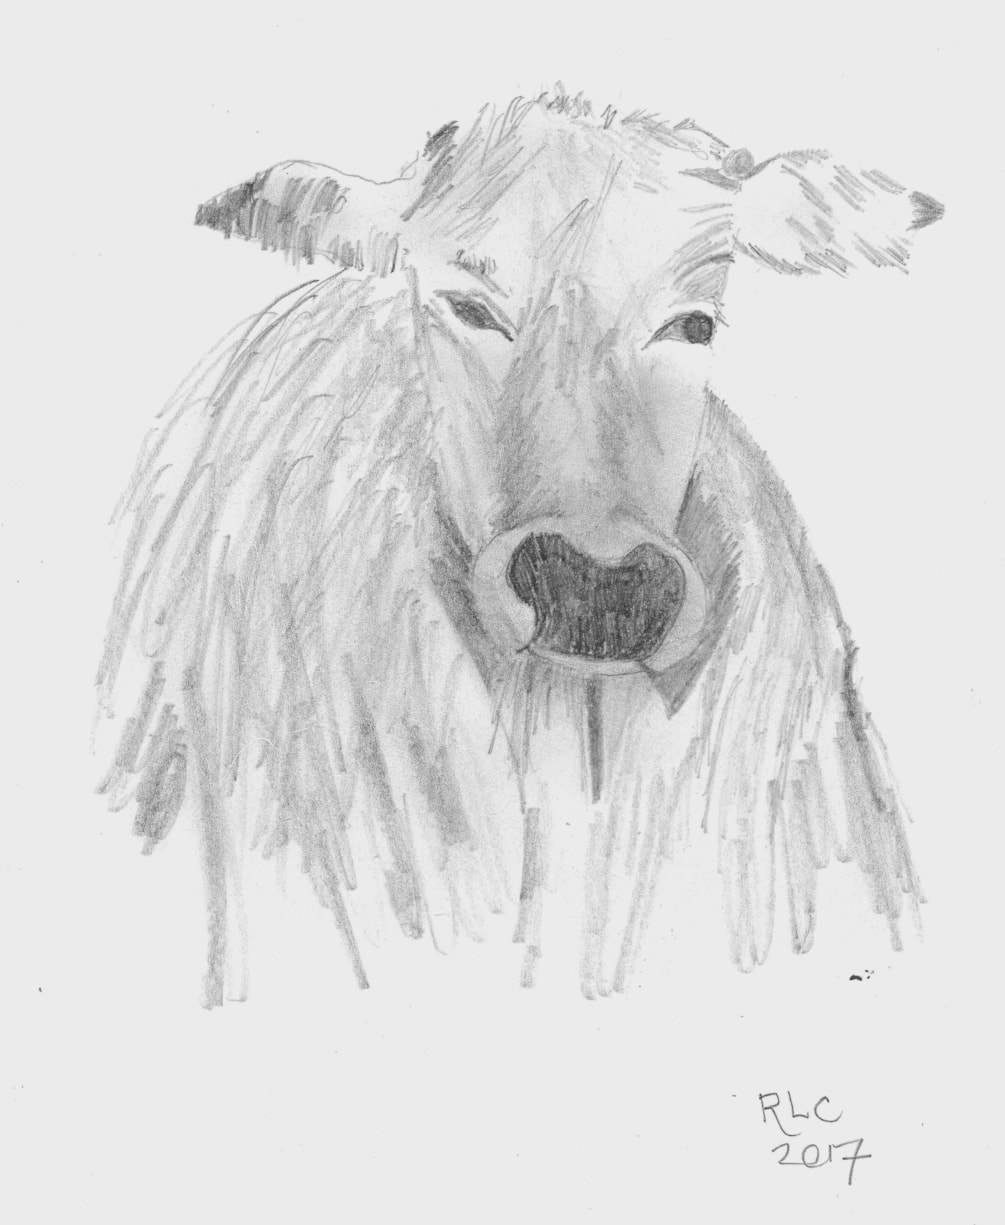 Cows are lovely animals